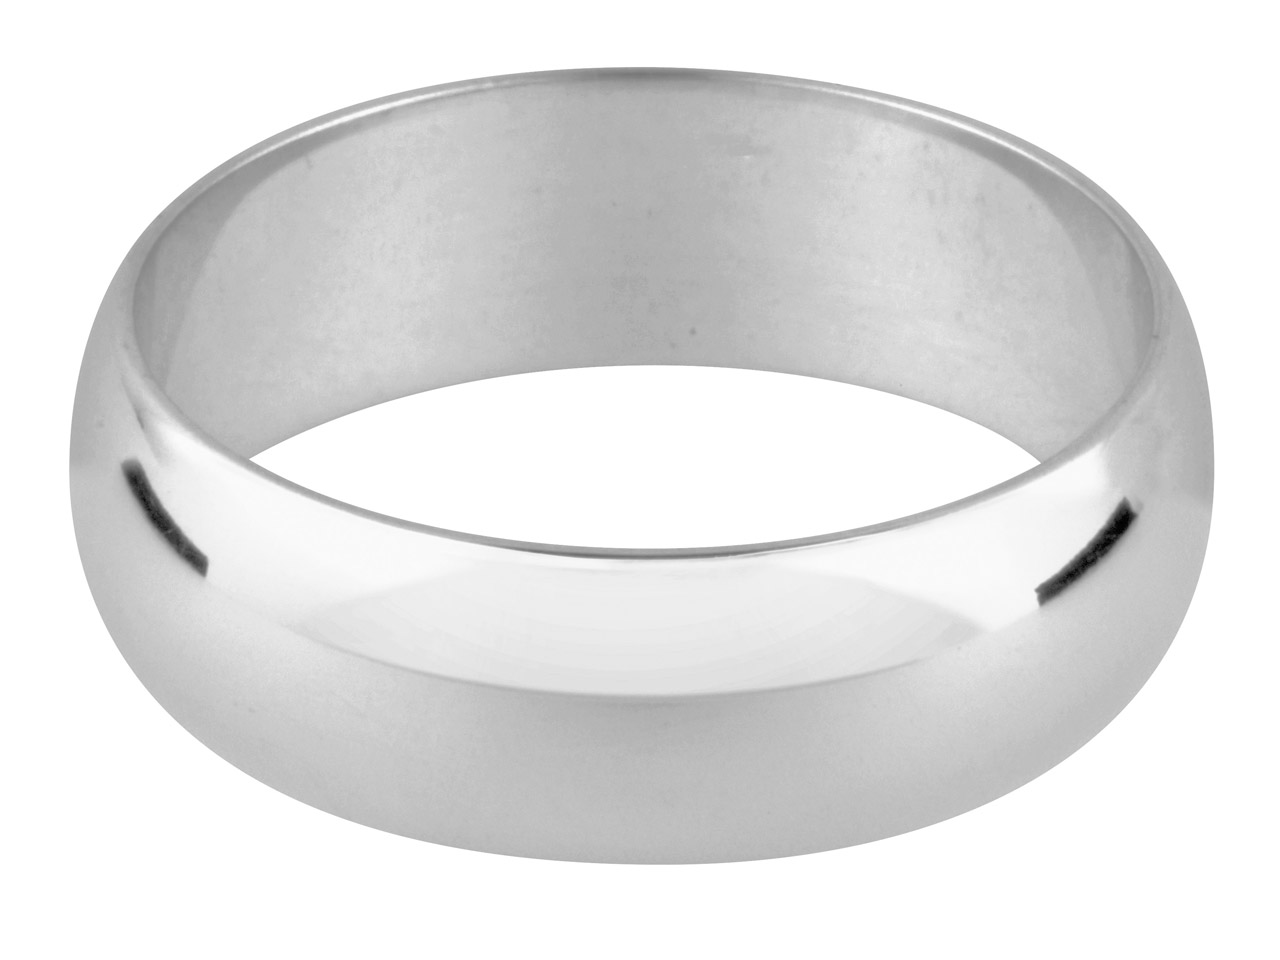 Palladium 500 D Shape Wedding Ring 5.0mm K 3.9gms Medium Weight       Hallmarked Wall Thickness 1.38mm